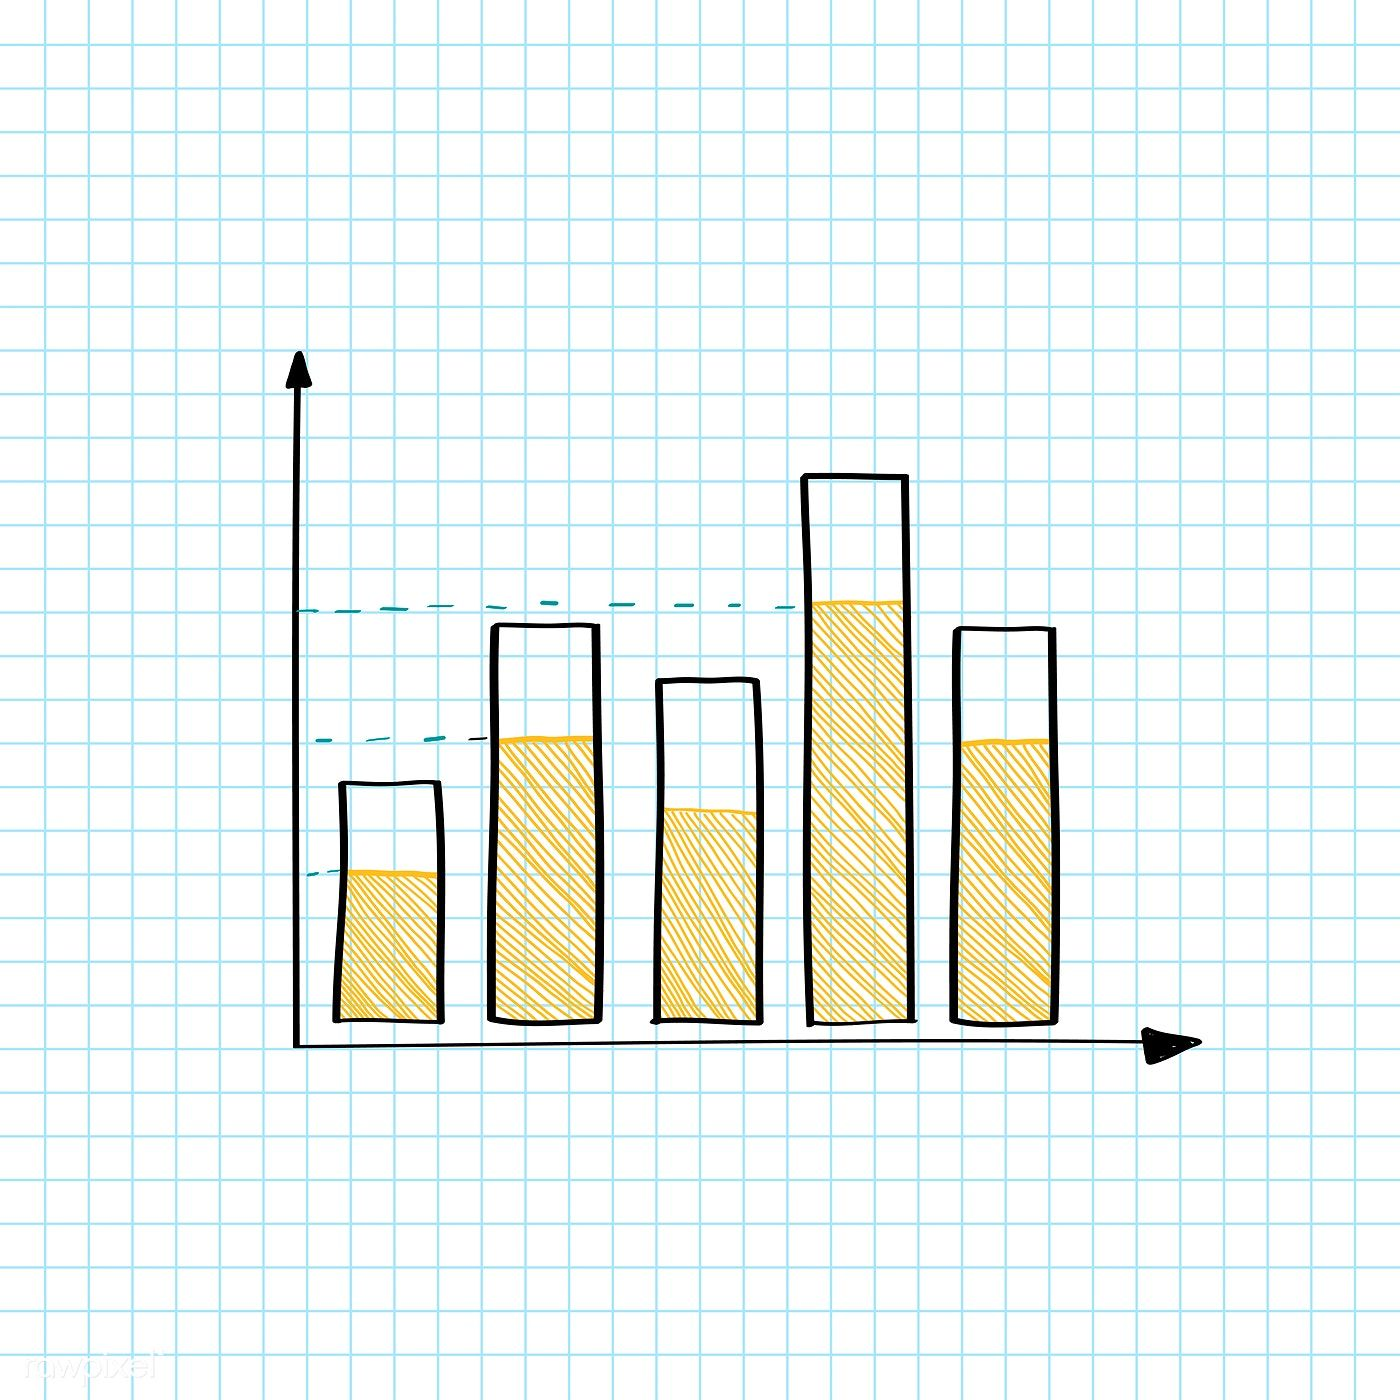 Stock Market Bar Graph Vector Free Image By Rawpixel Com Filmful Bar Graph Design Graph Design Graphing